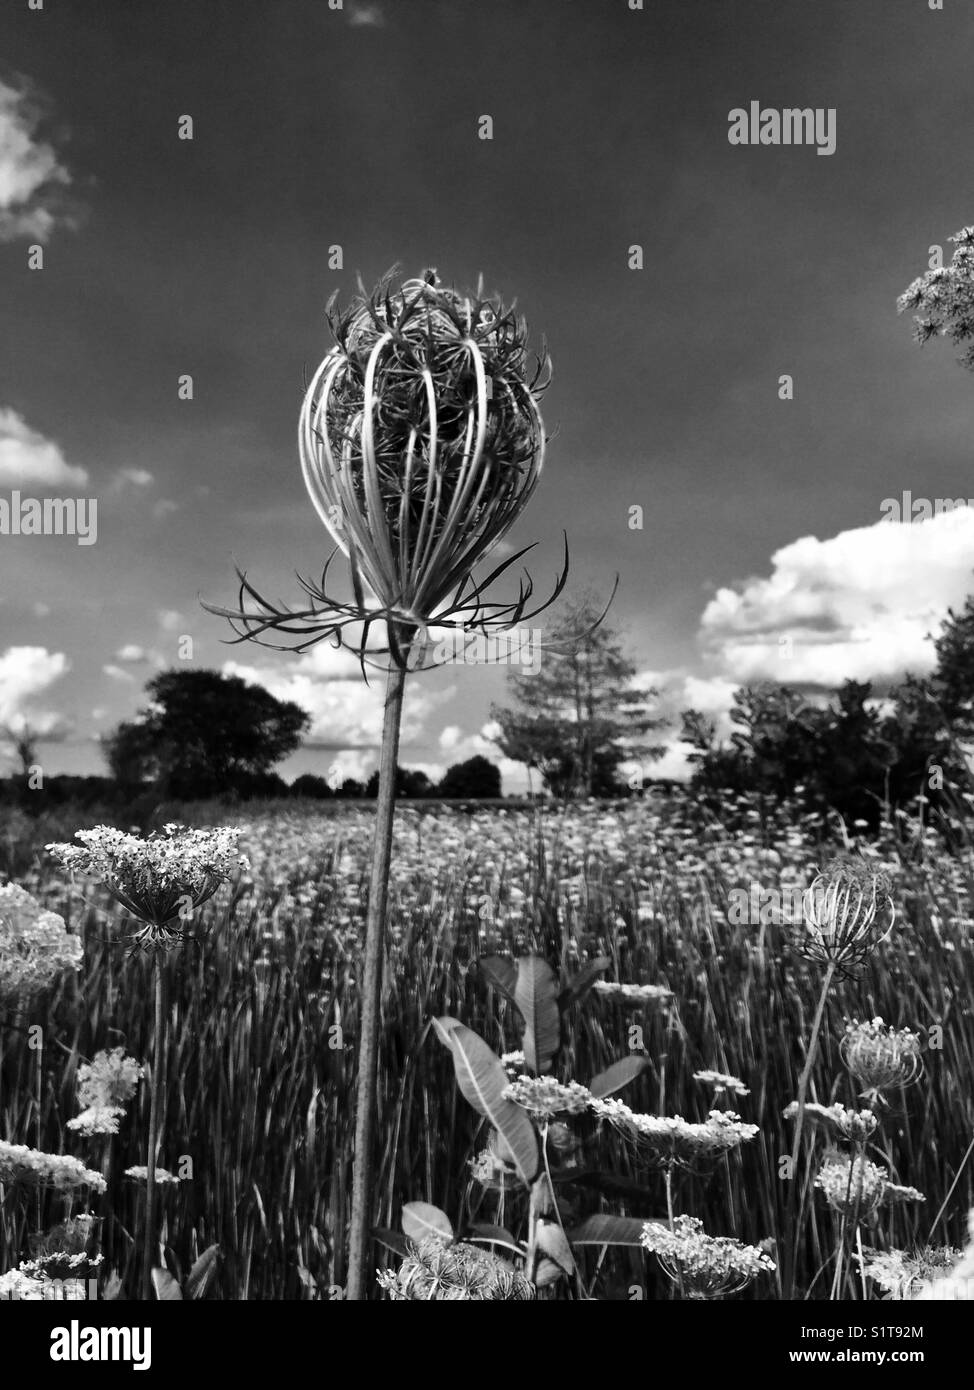 Black and white of a Milk Weed in a prairie on a hot summer day in the Midwest. - Stock Image